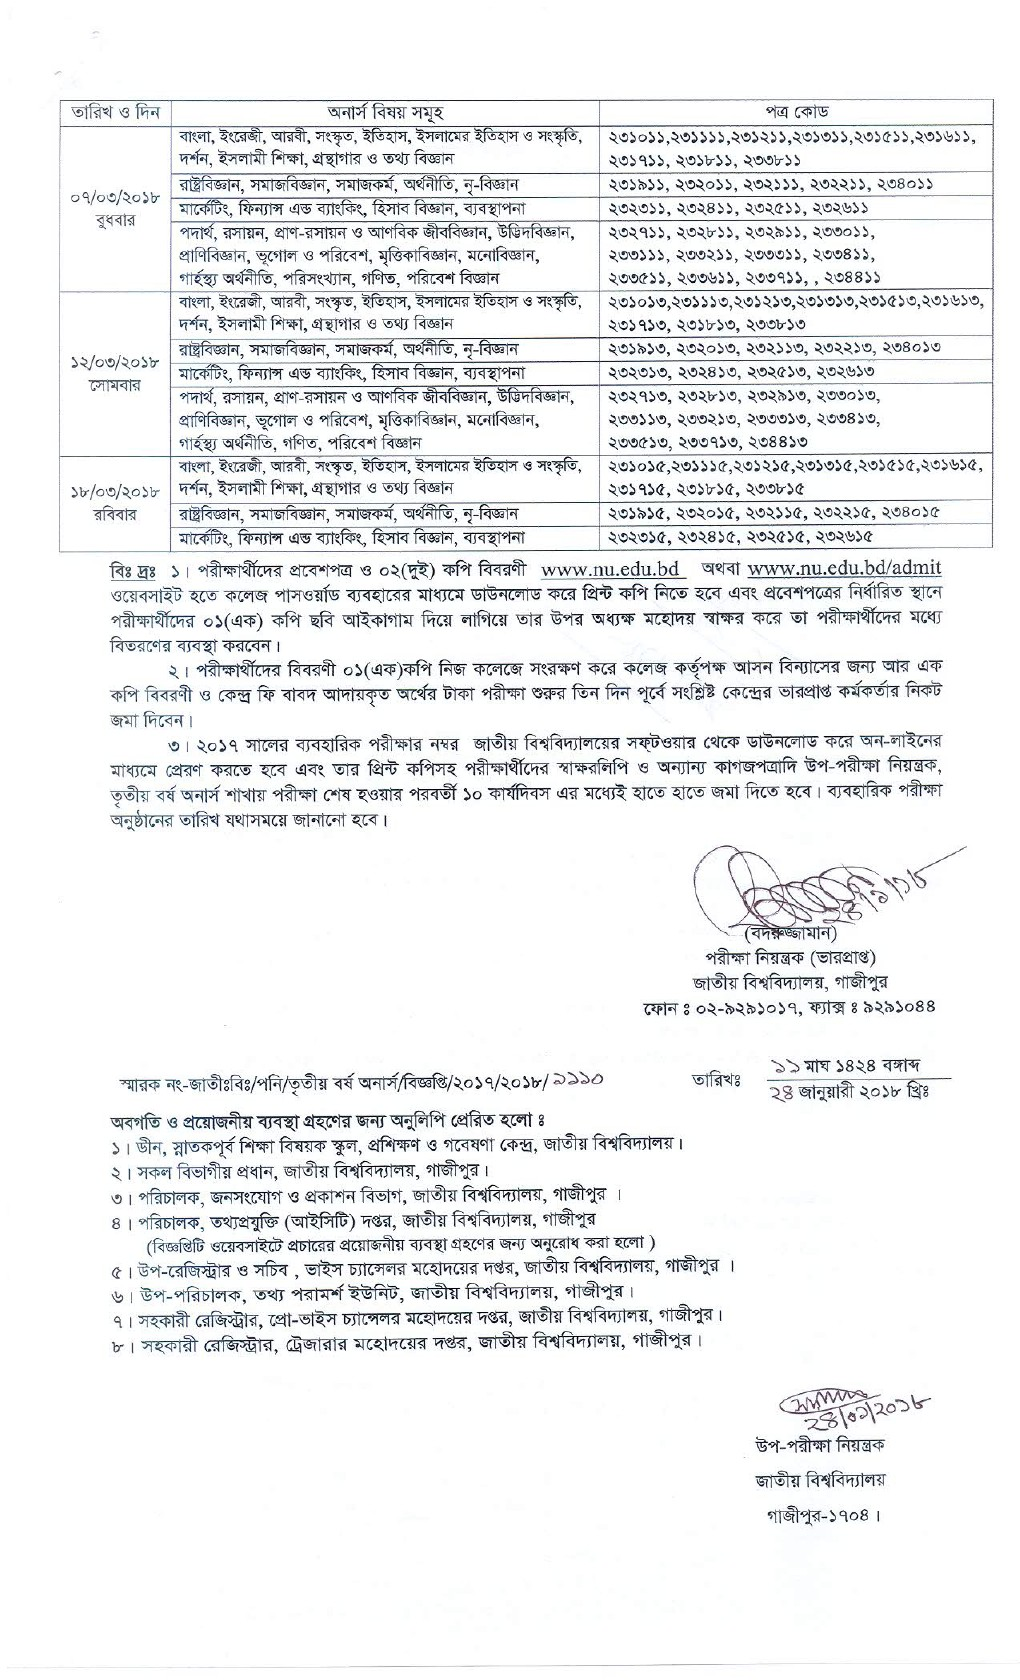 Honours 3rd Year Exam Routine 2018 Published National